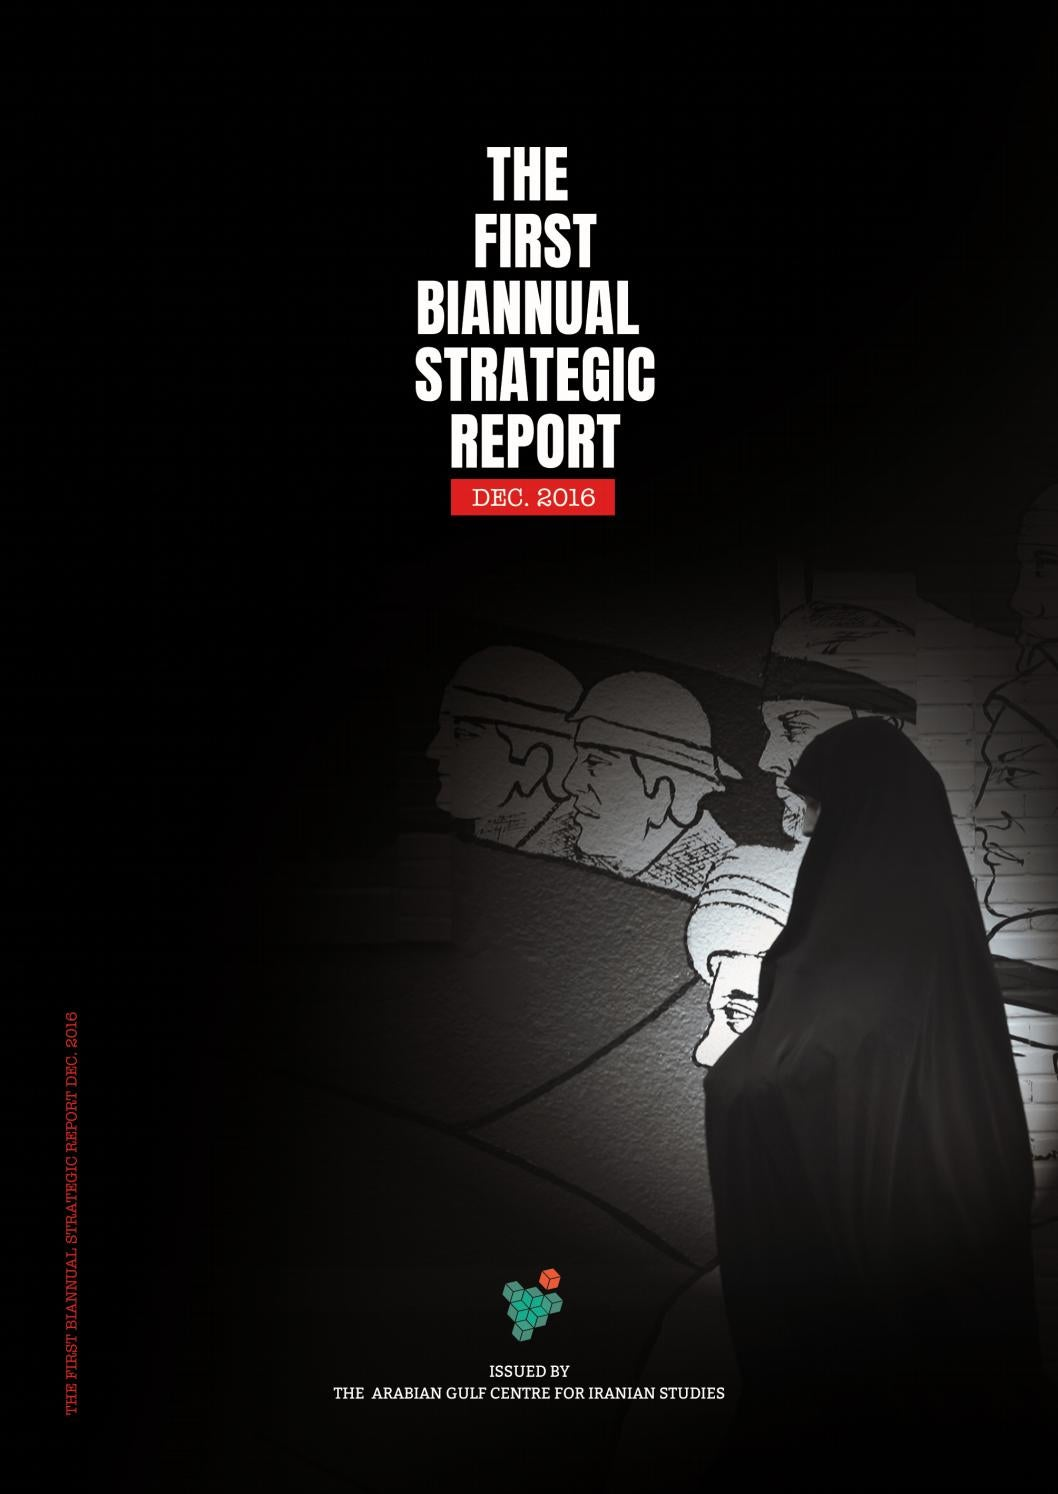 9b20240ac The first biannual strategic report by Arabiangcis Agcis - issuu